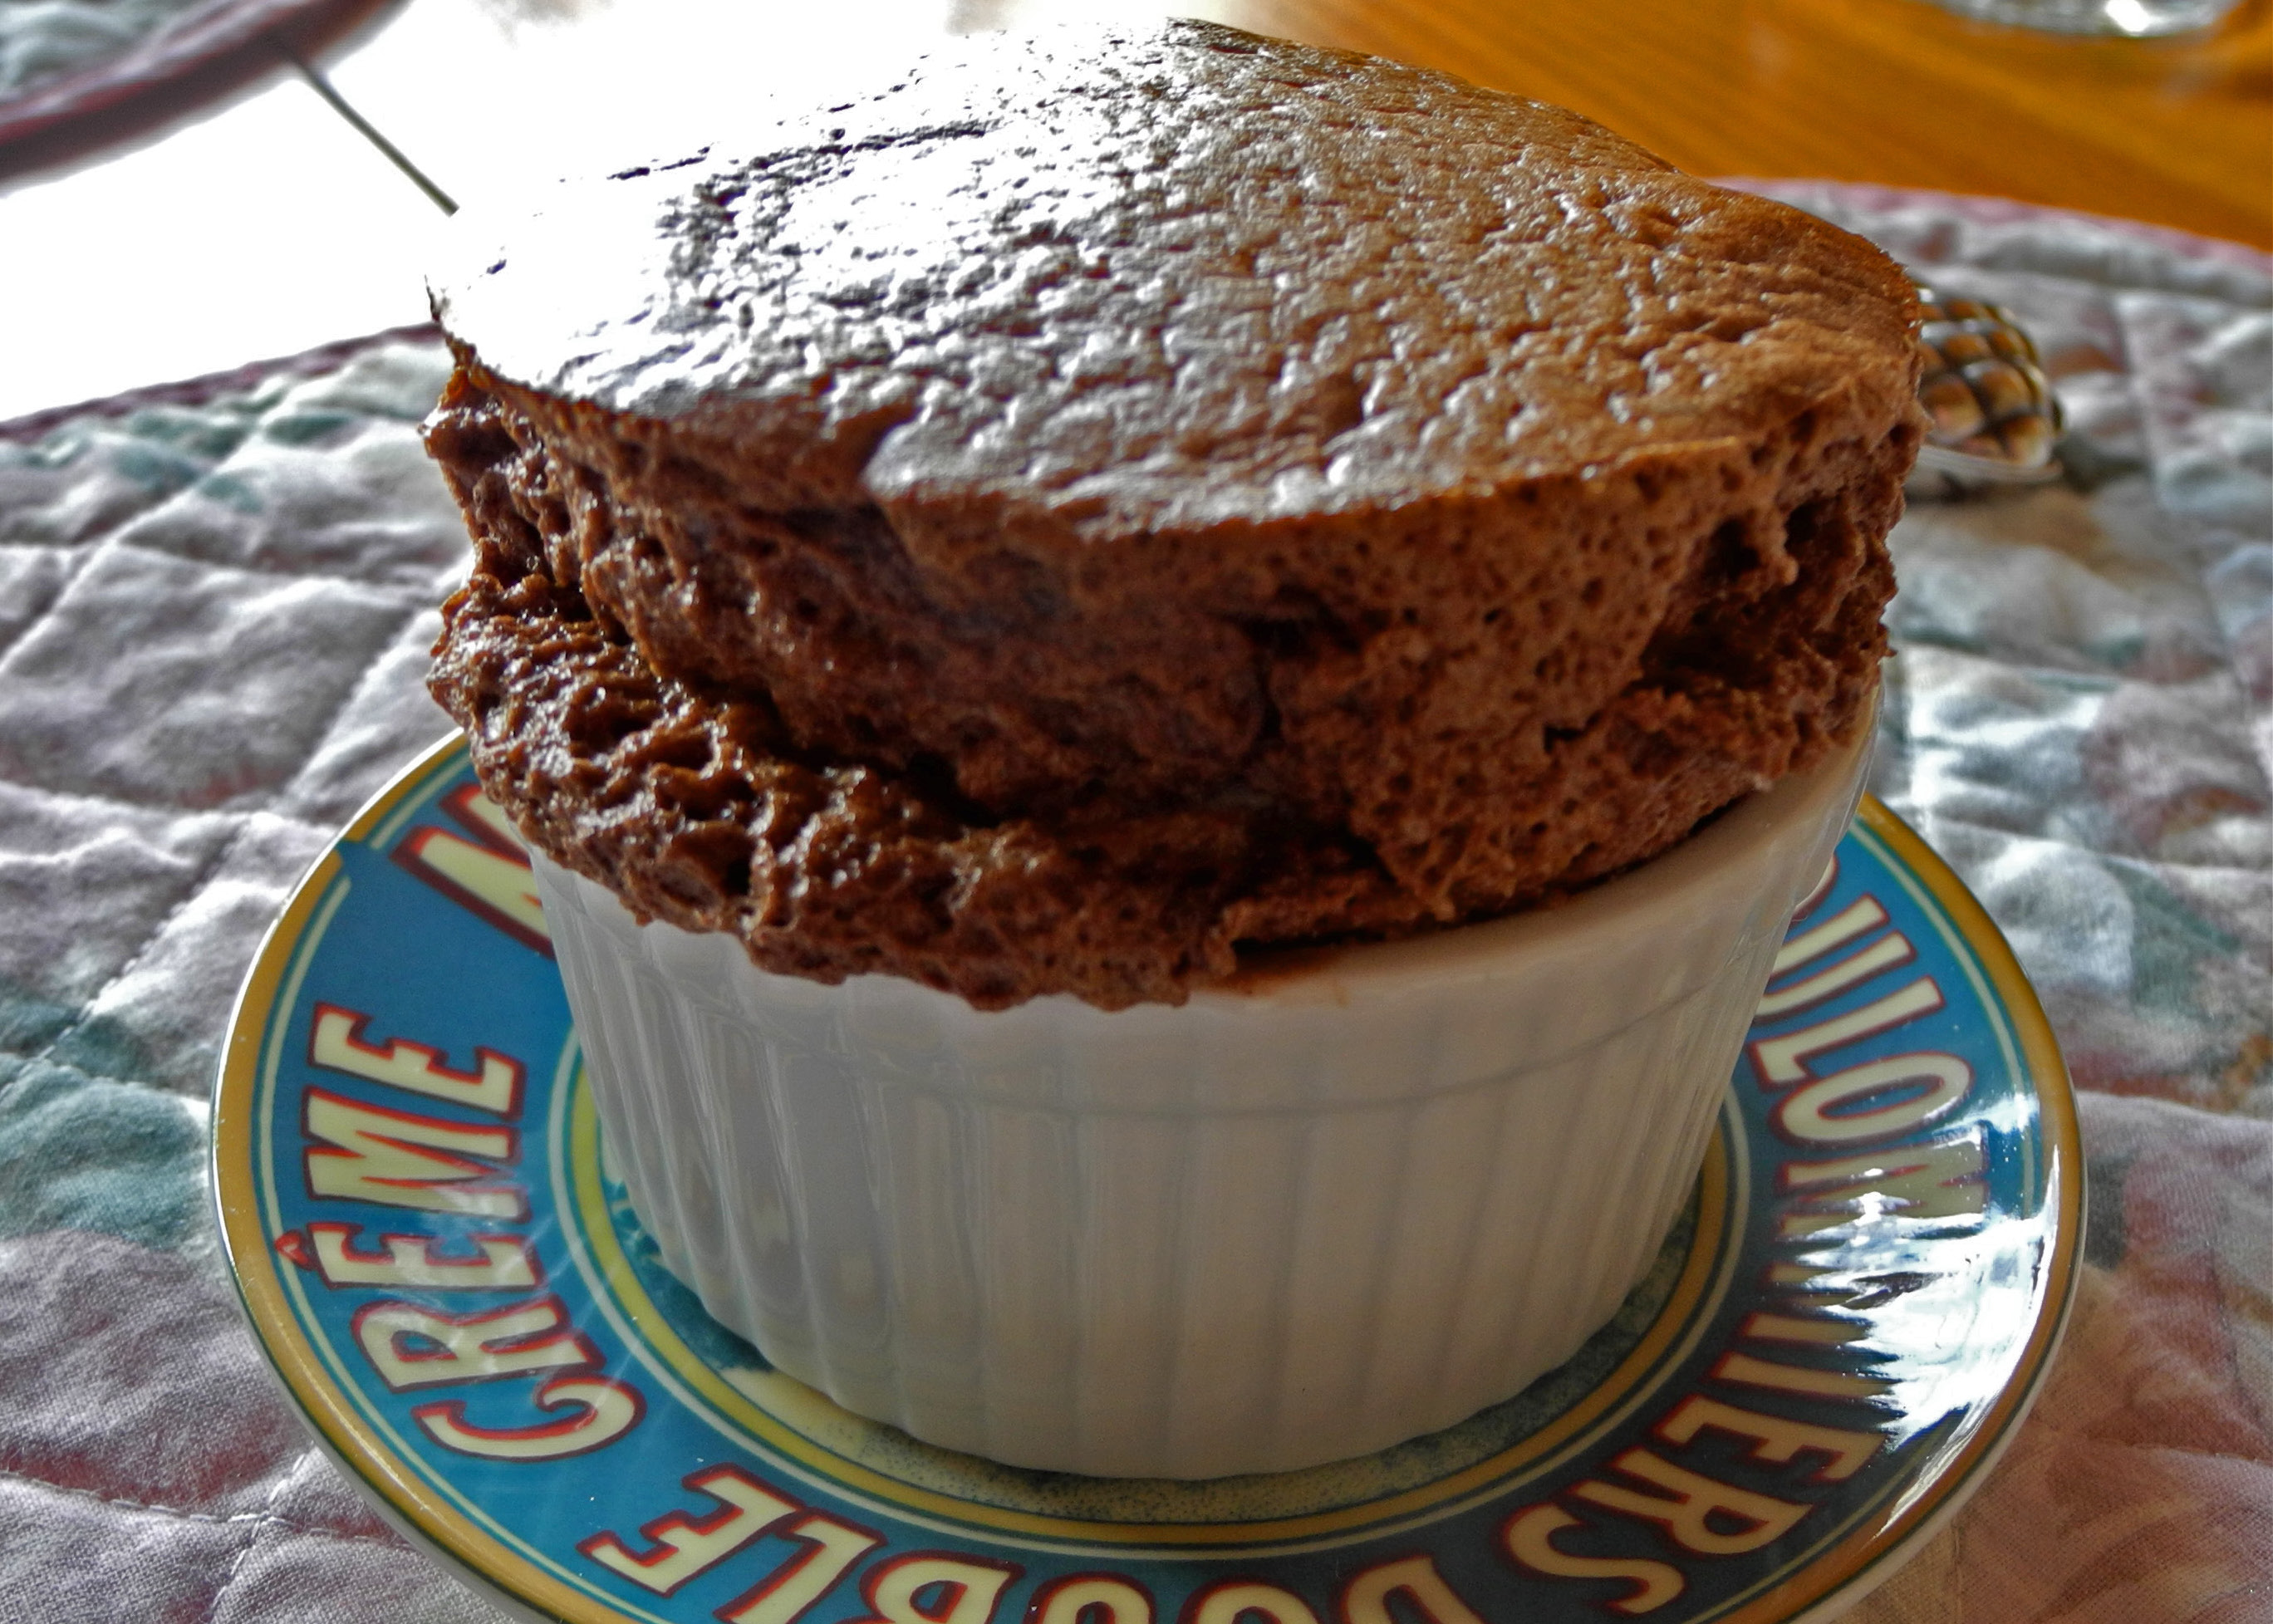 chocolate souffle - presentation (serving)